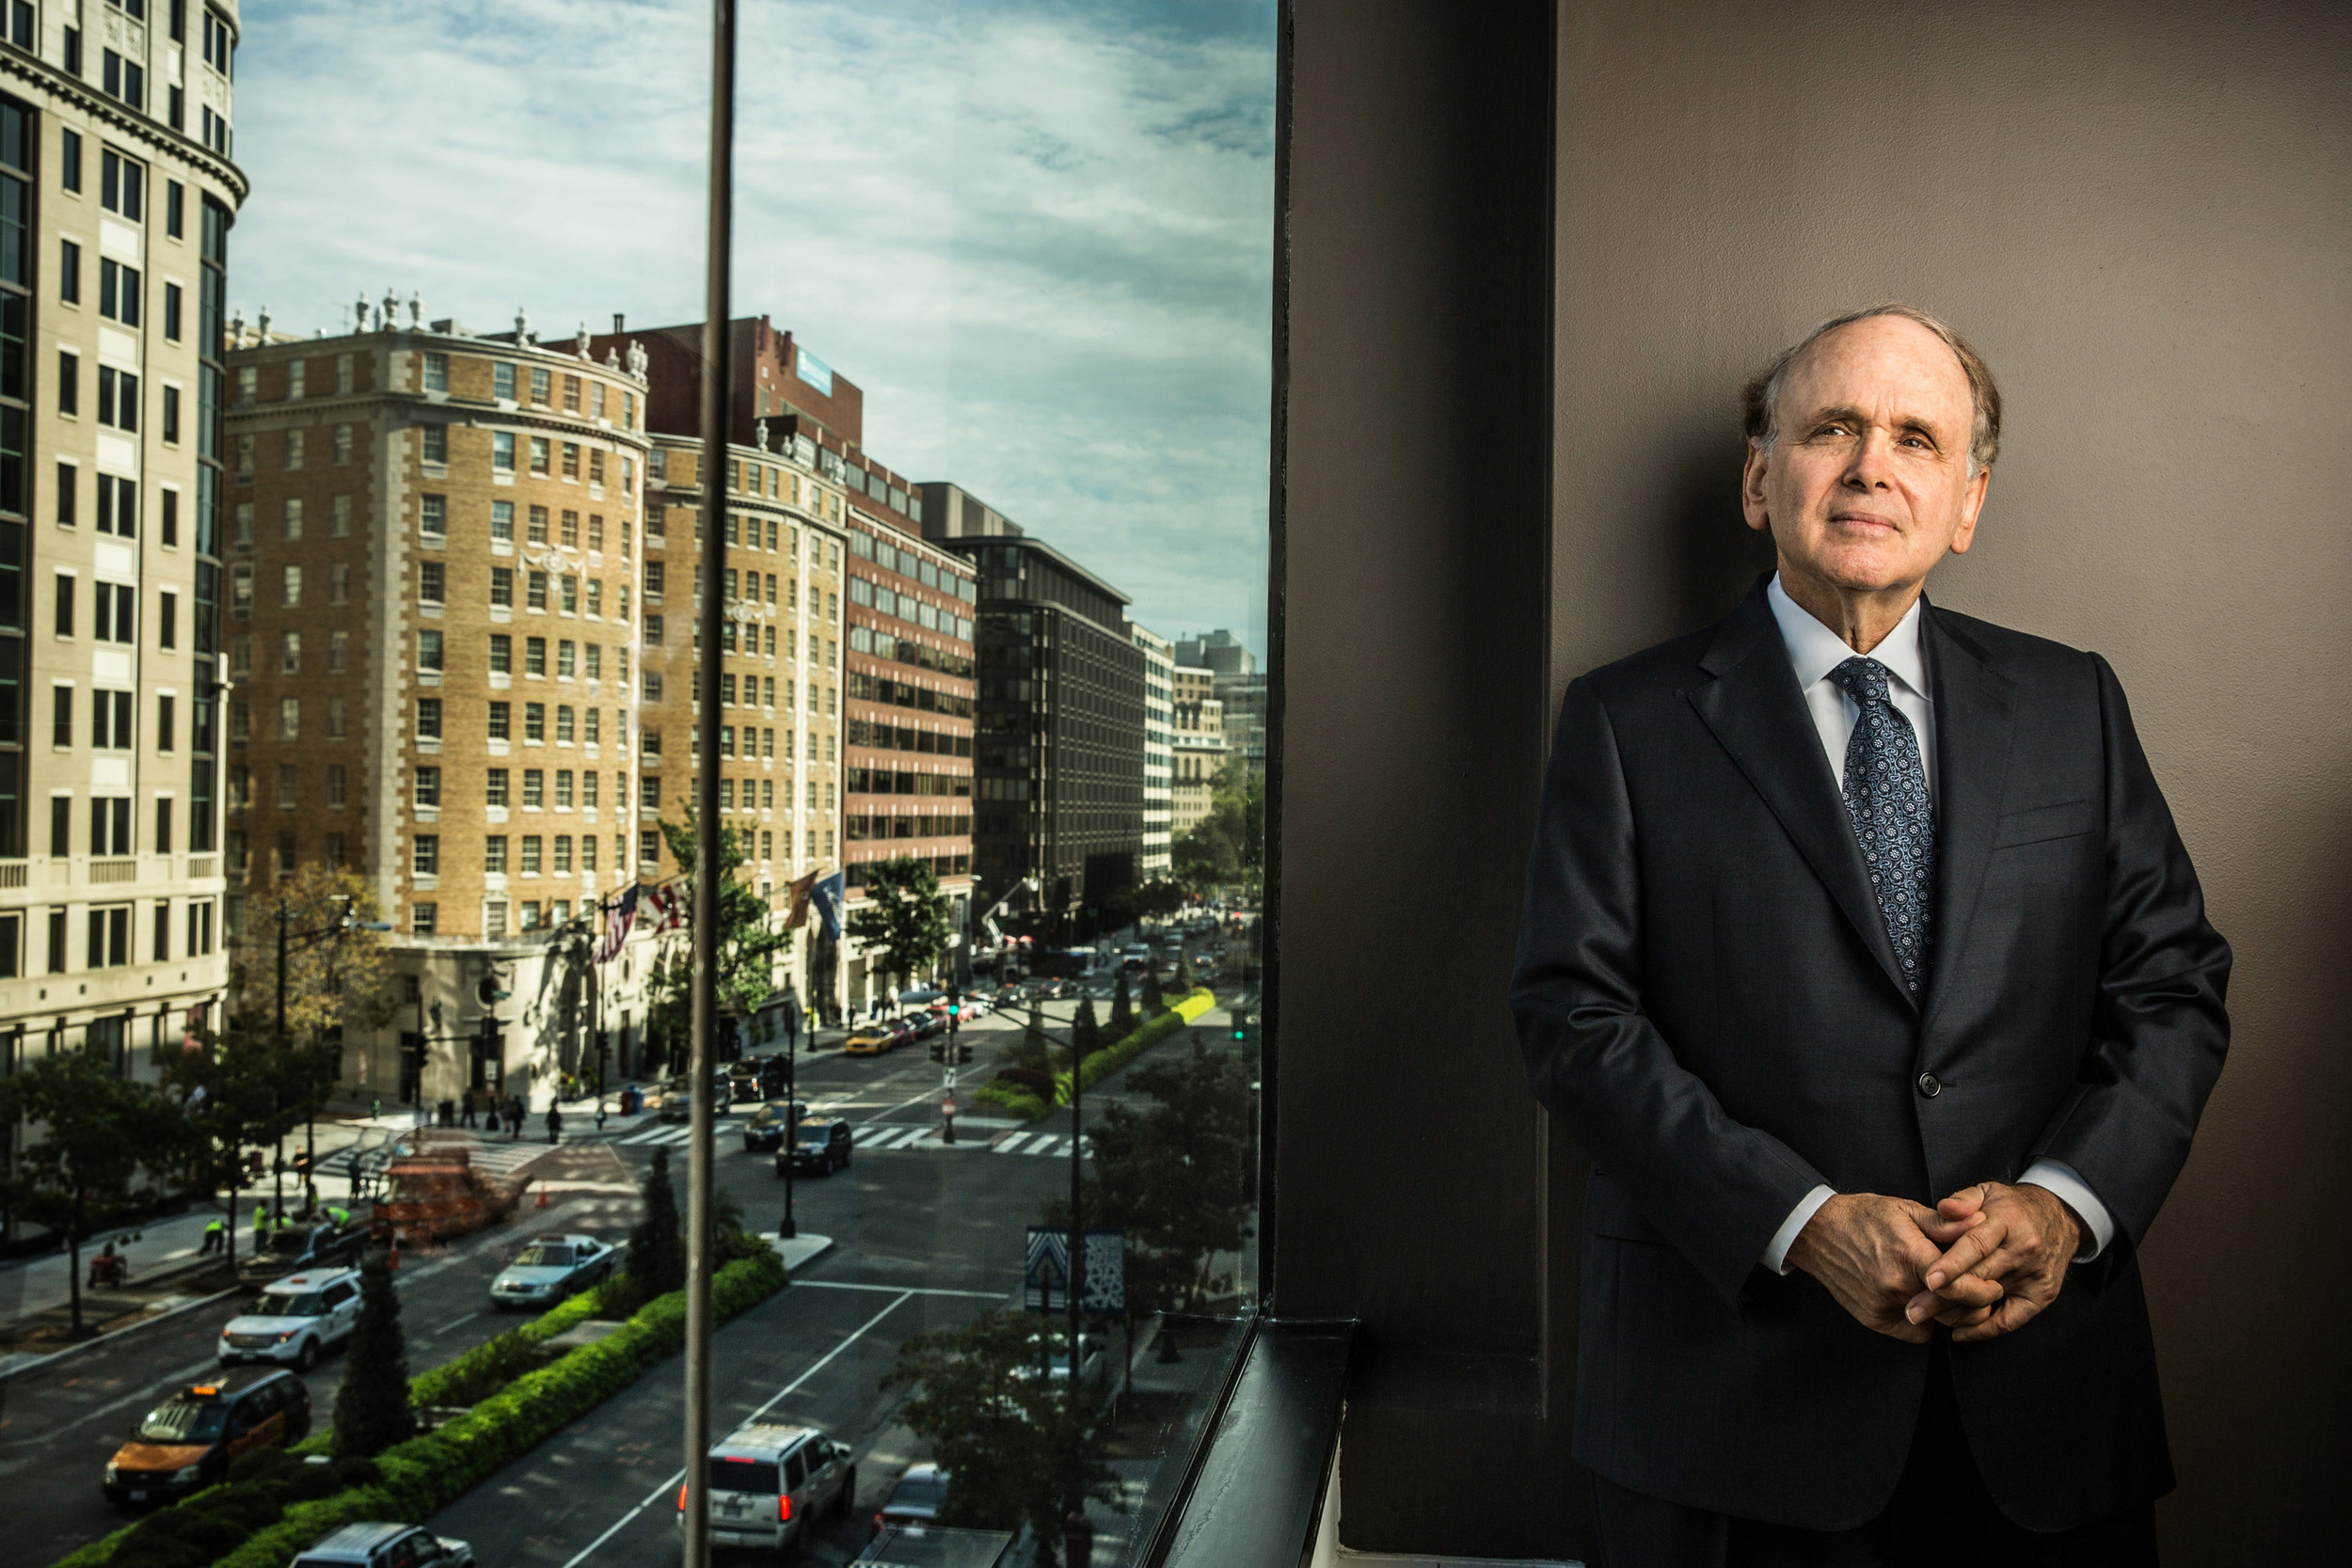 Pulitzer Prize-winning author Daniel Yergin